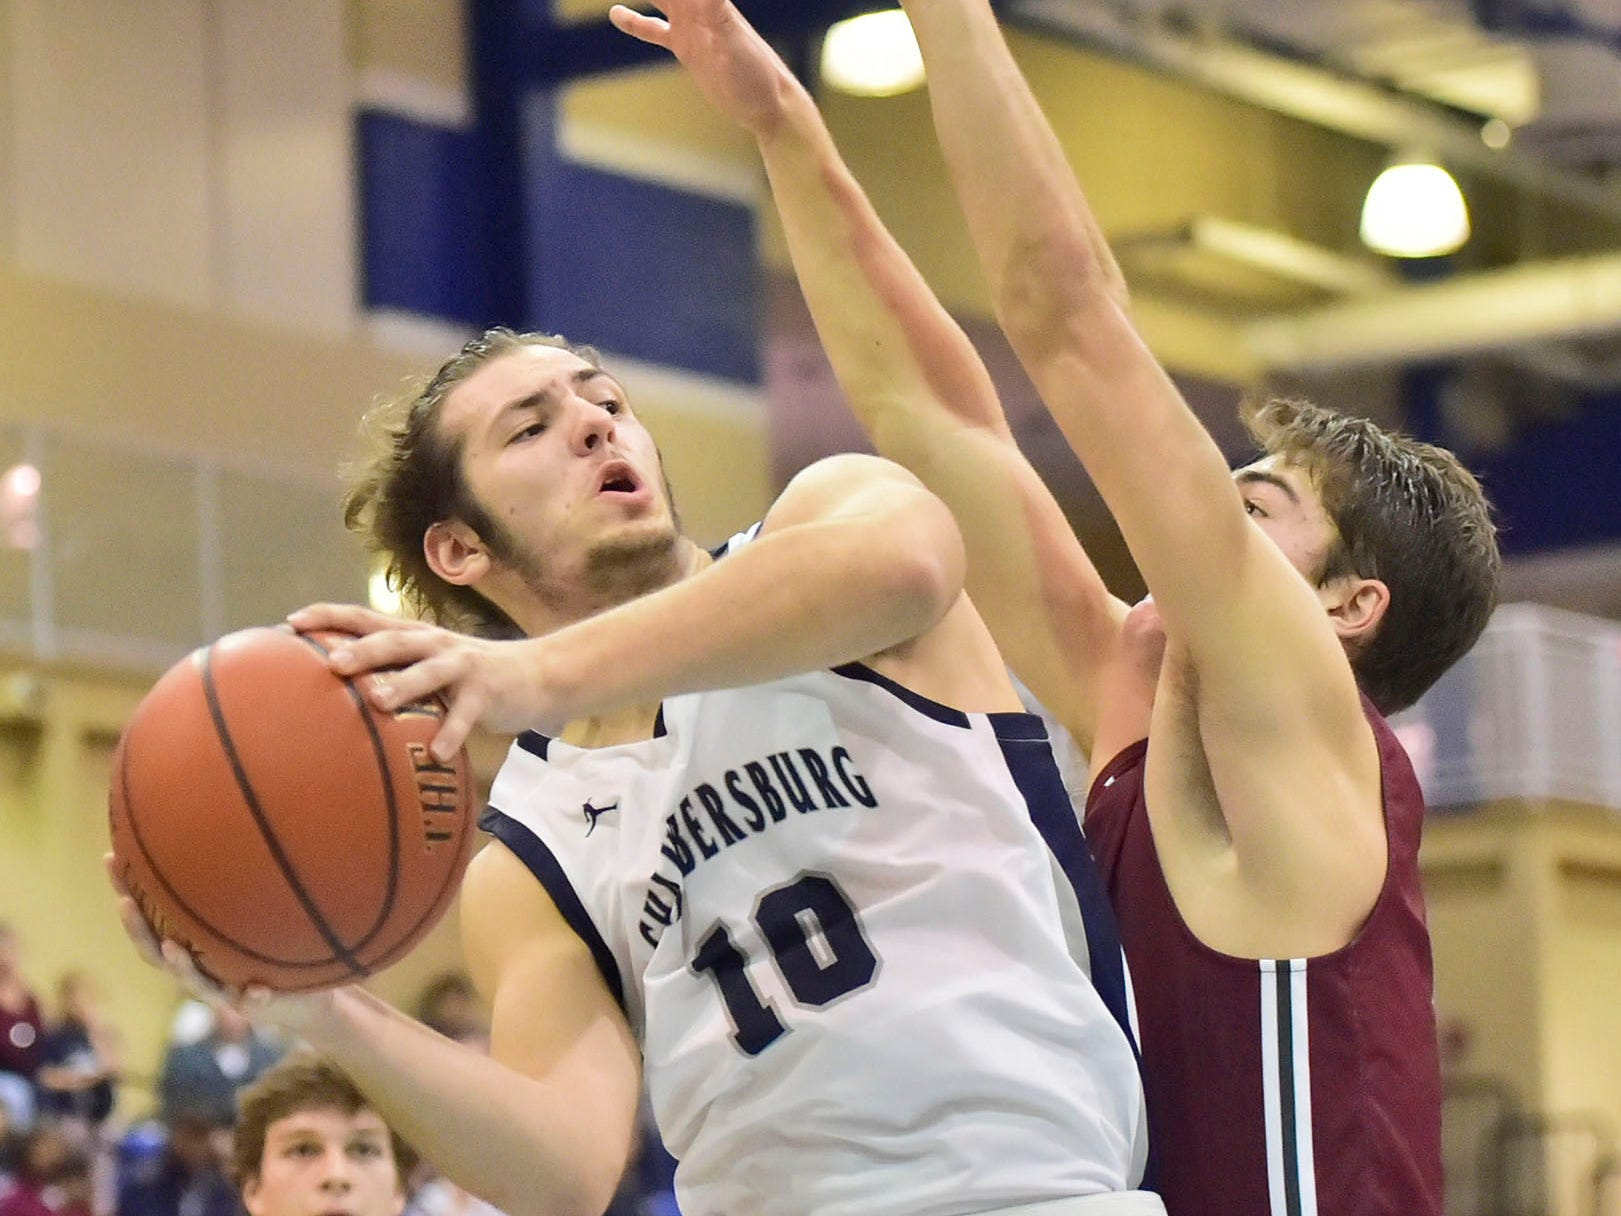 Chambersburg's Seth Brouse drives against a State College defender. Chambersburg dropped a buzzer beater 42-40 to State College during District 3 basketball game, Friday, Dec. 14, 2018.